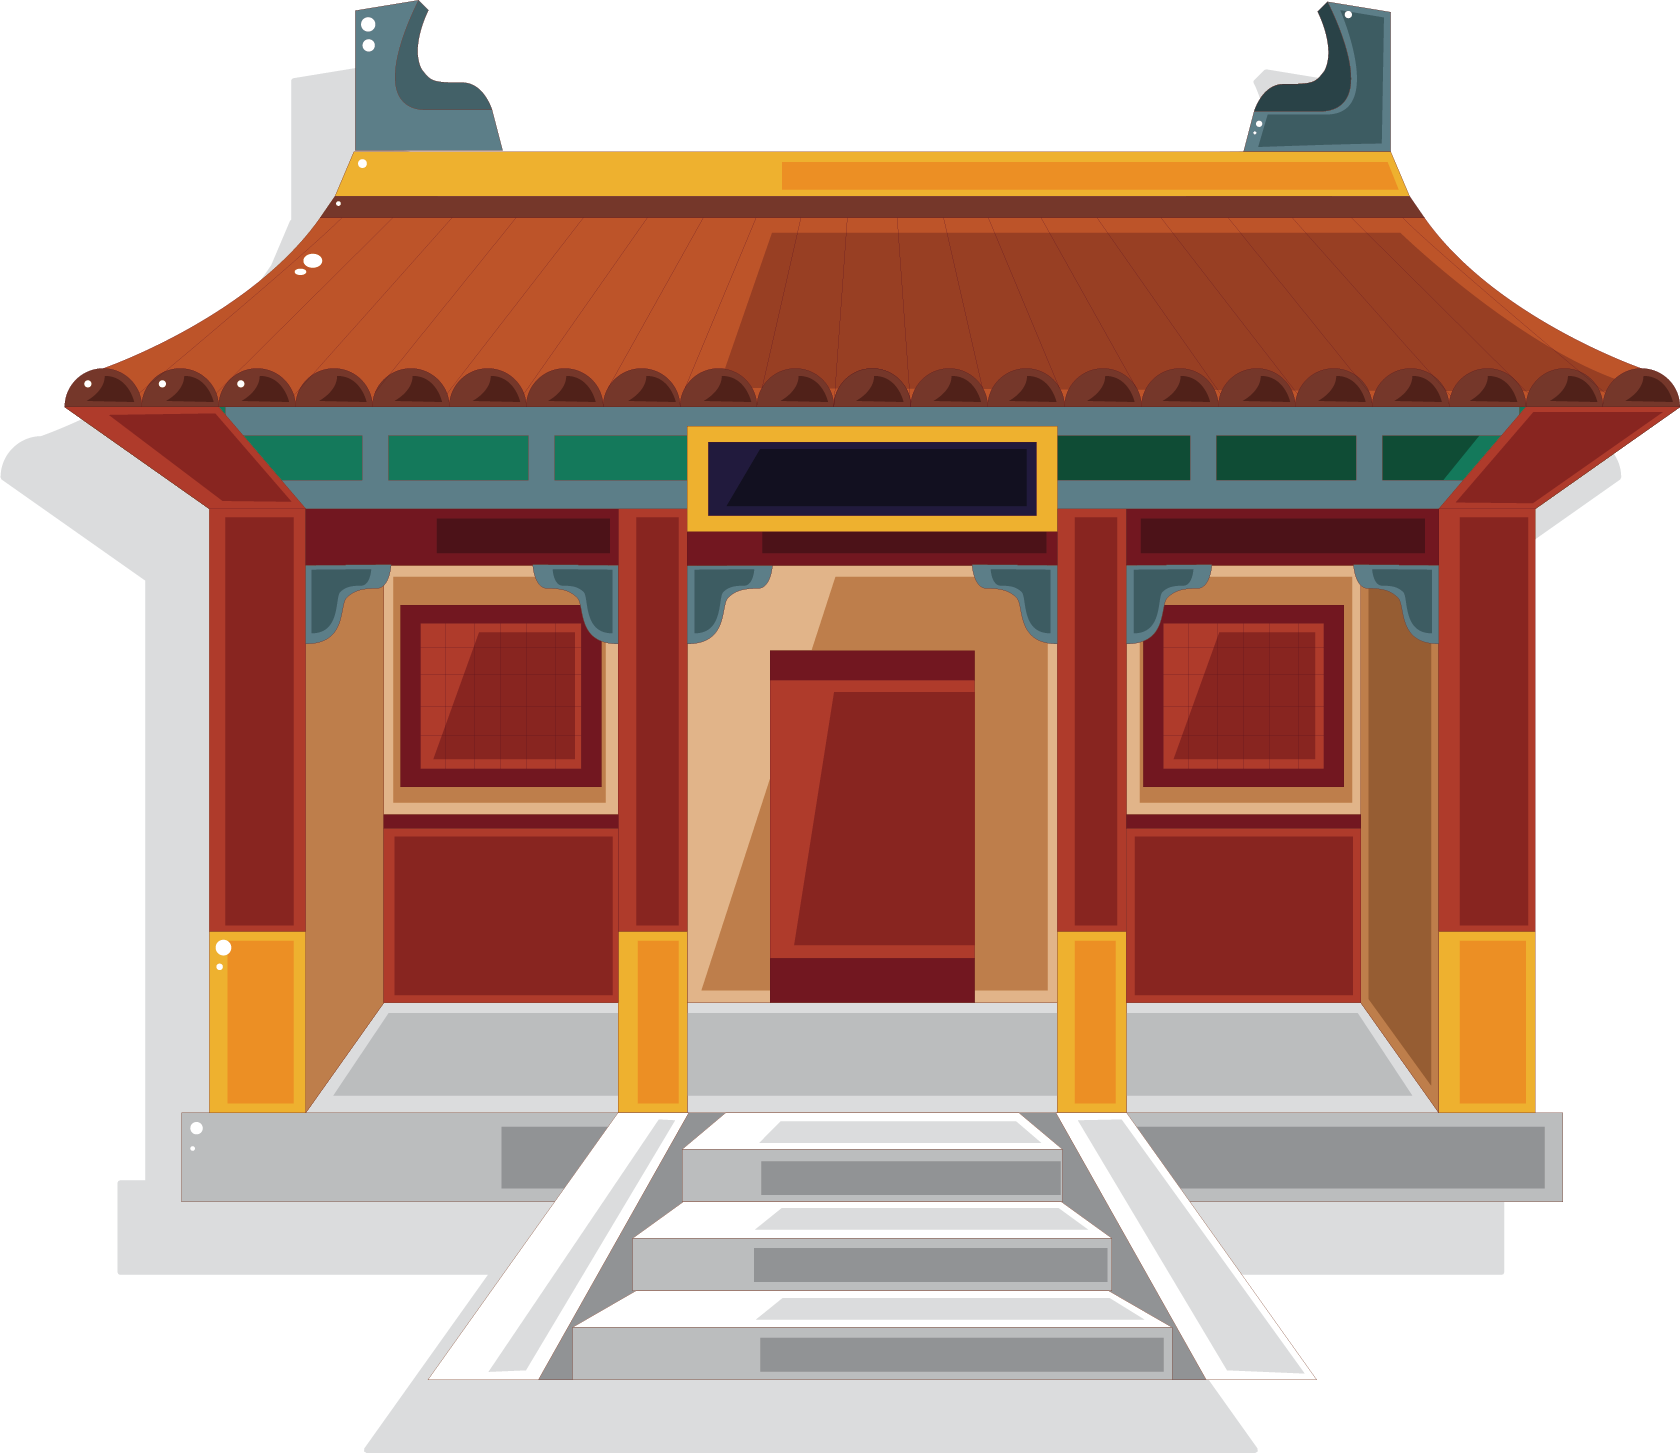 Palace clipart castle roof. Chinese temple pagoda clip